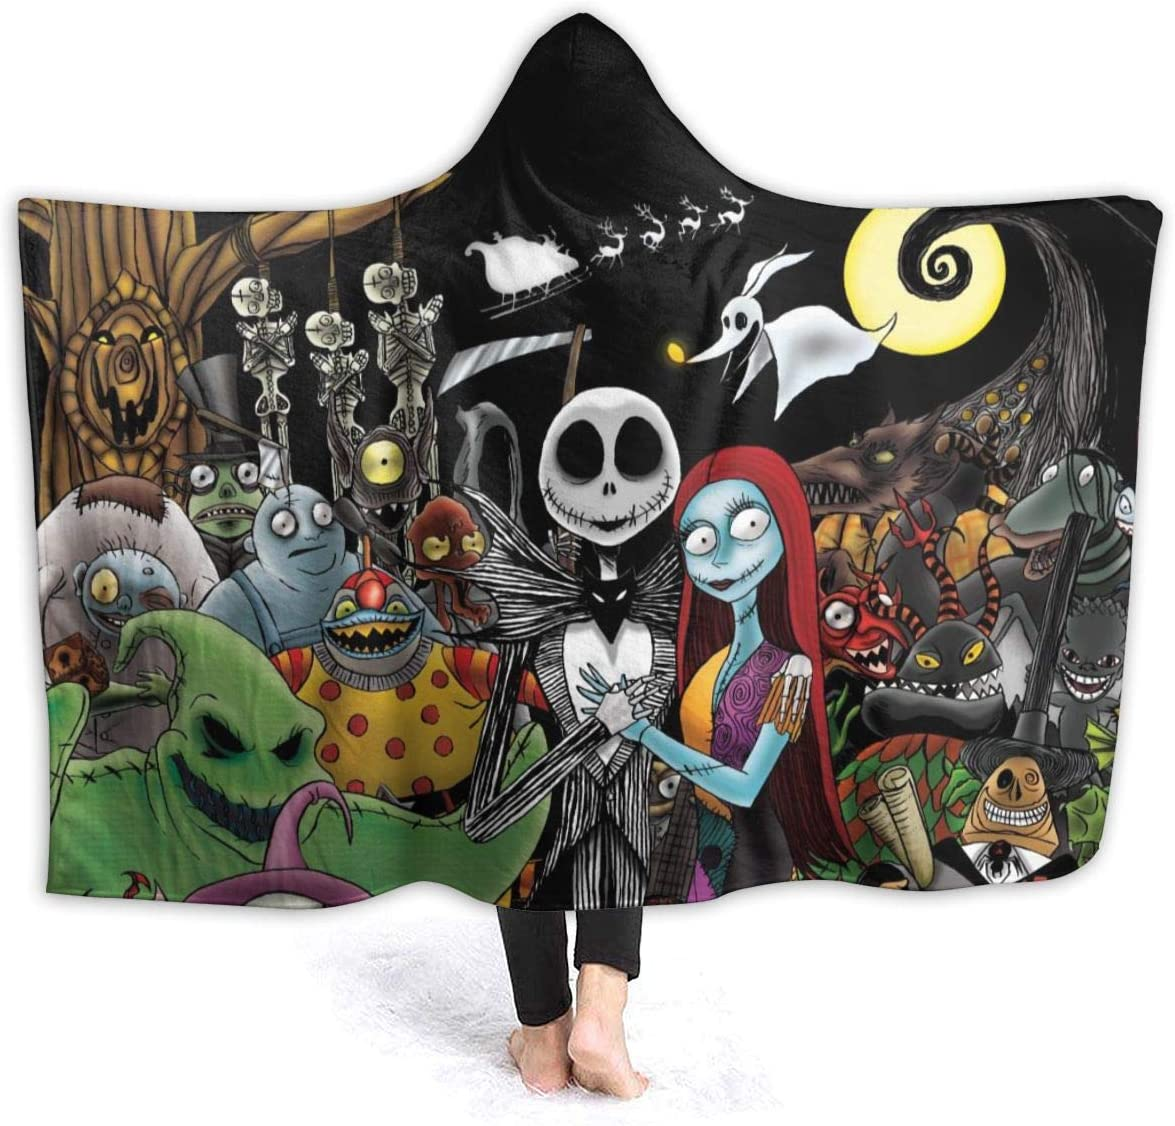 Andea Nightmare Before Christmas Luxury Hooded Blanket Warm Wearable Fashion Novelty Cape Cloak Gift for Kids Adults 80x60 Inch